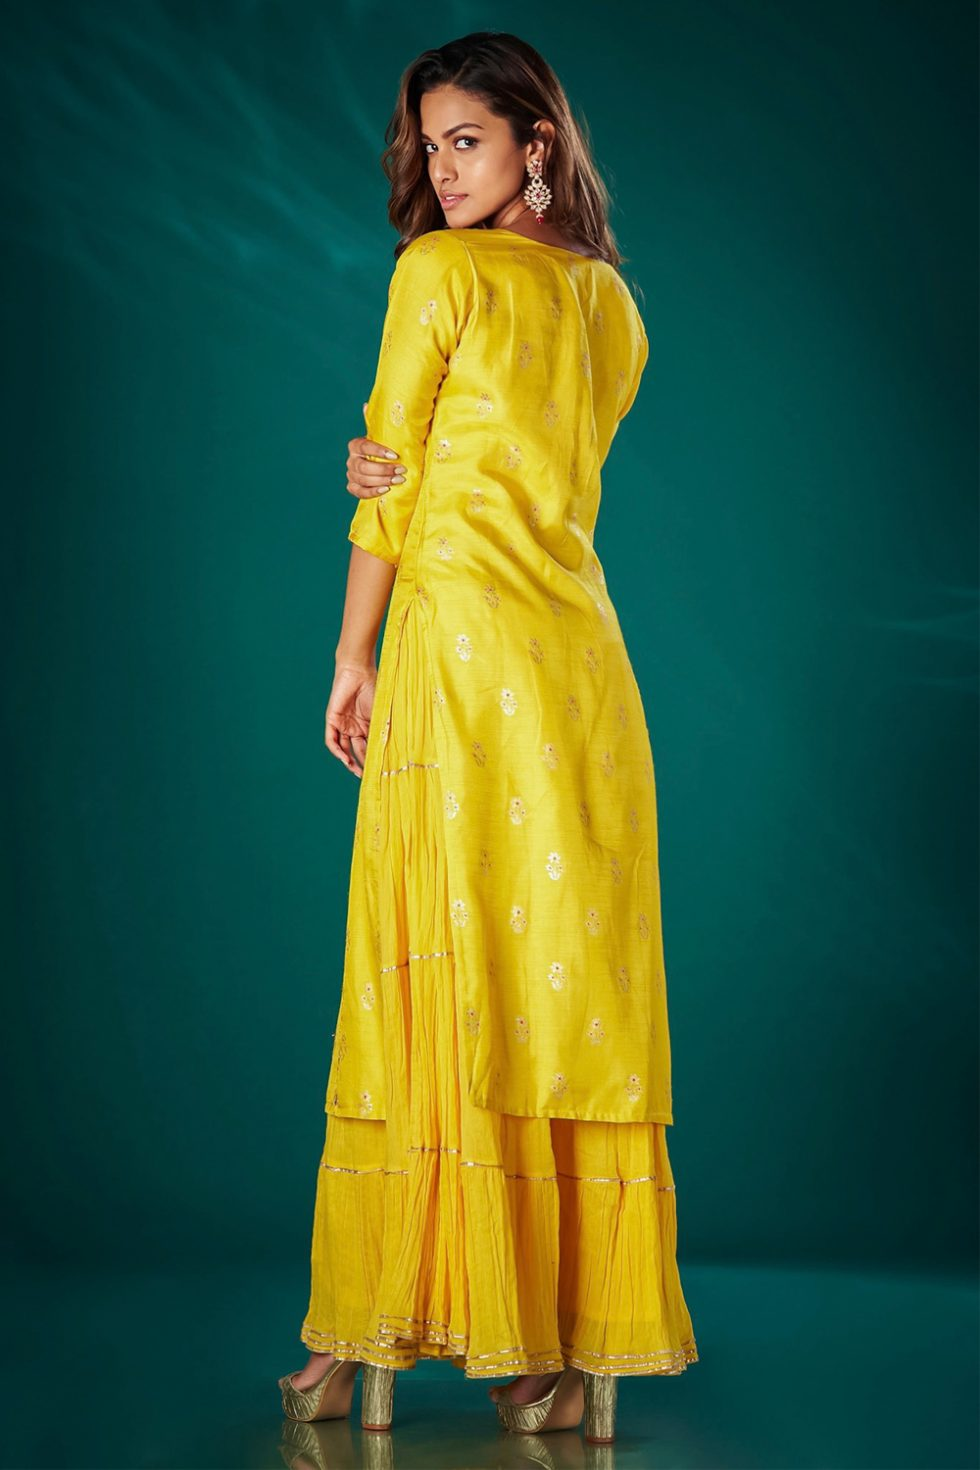 Sunshine yellow self patterned long kurti set with an attached tiered layer paired with a matching dupatta and gota work.